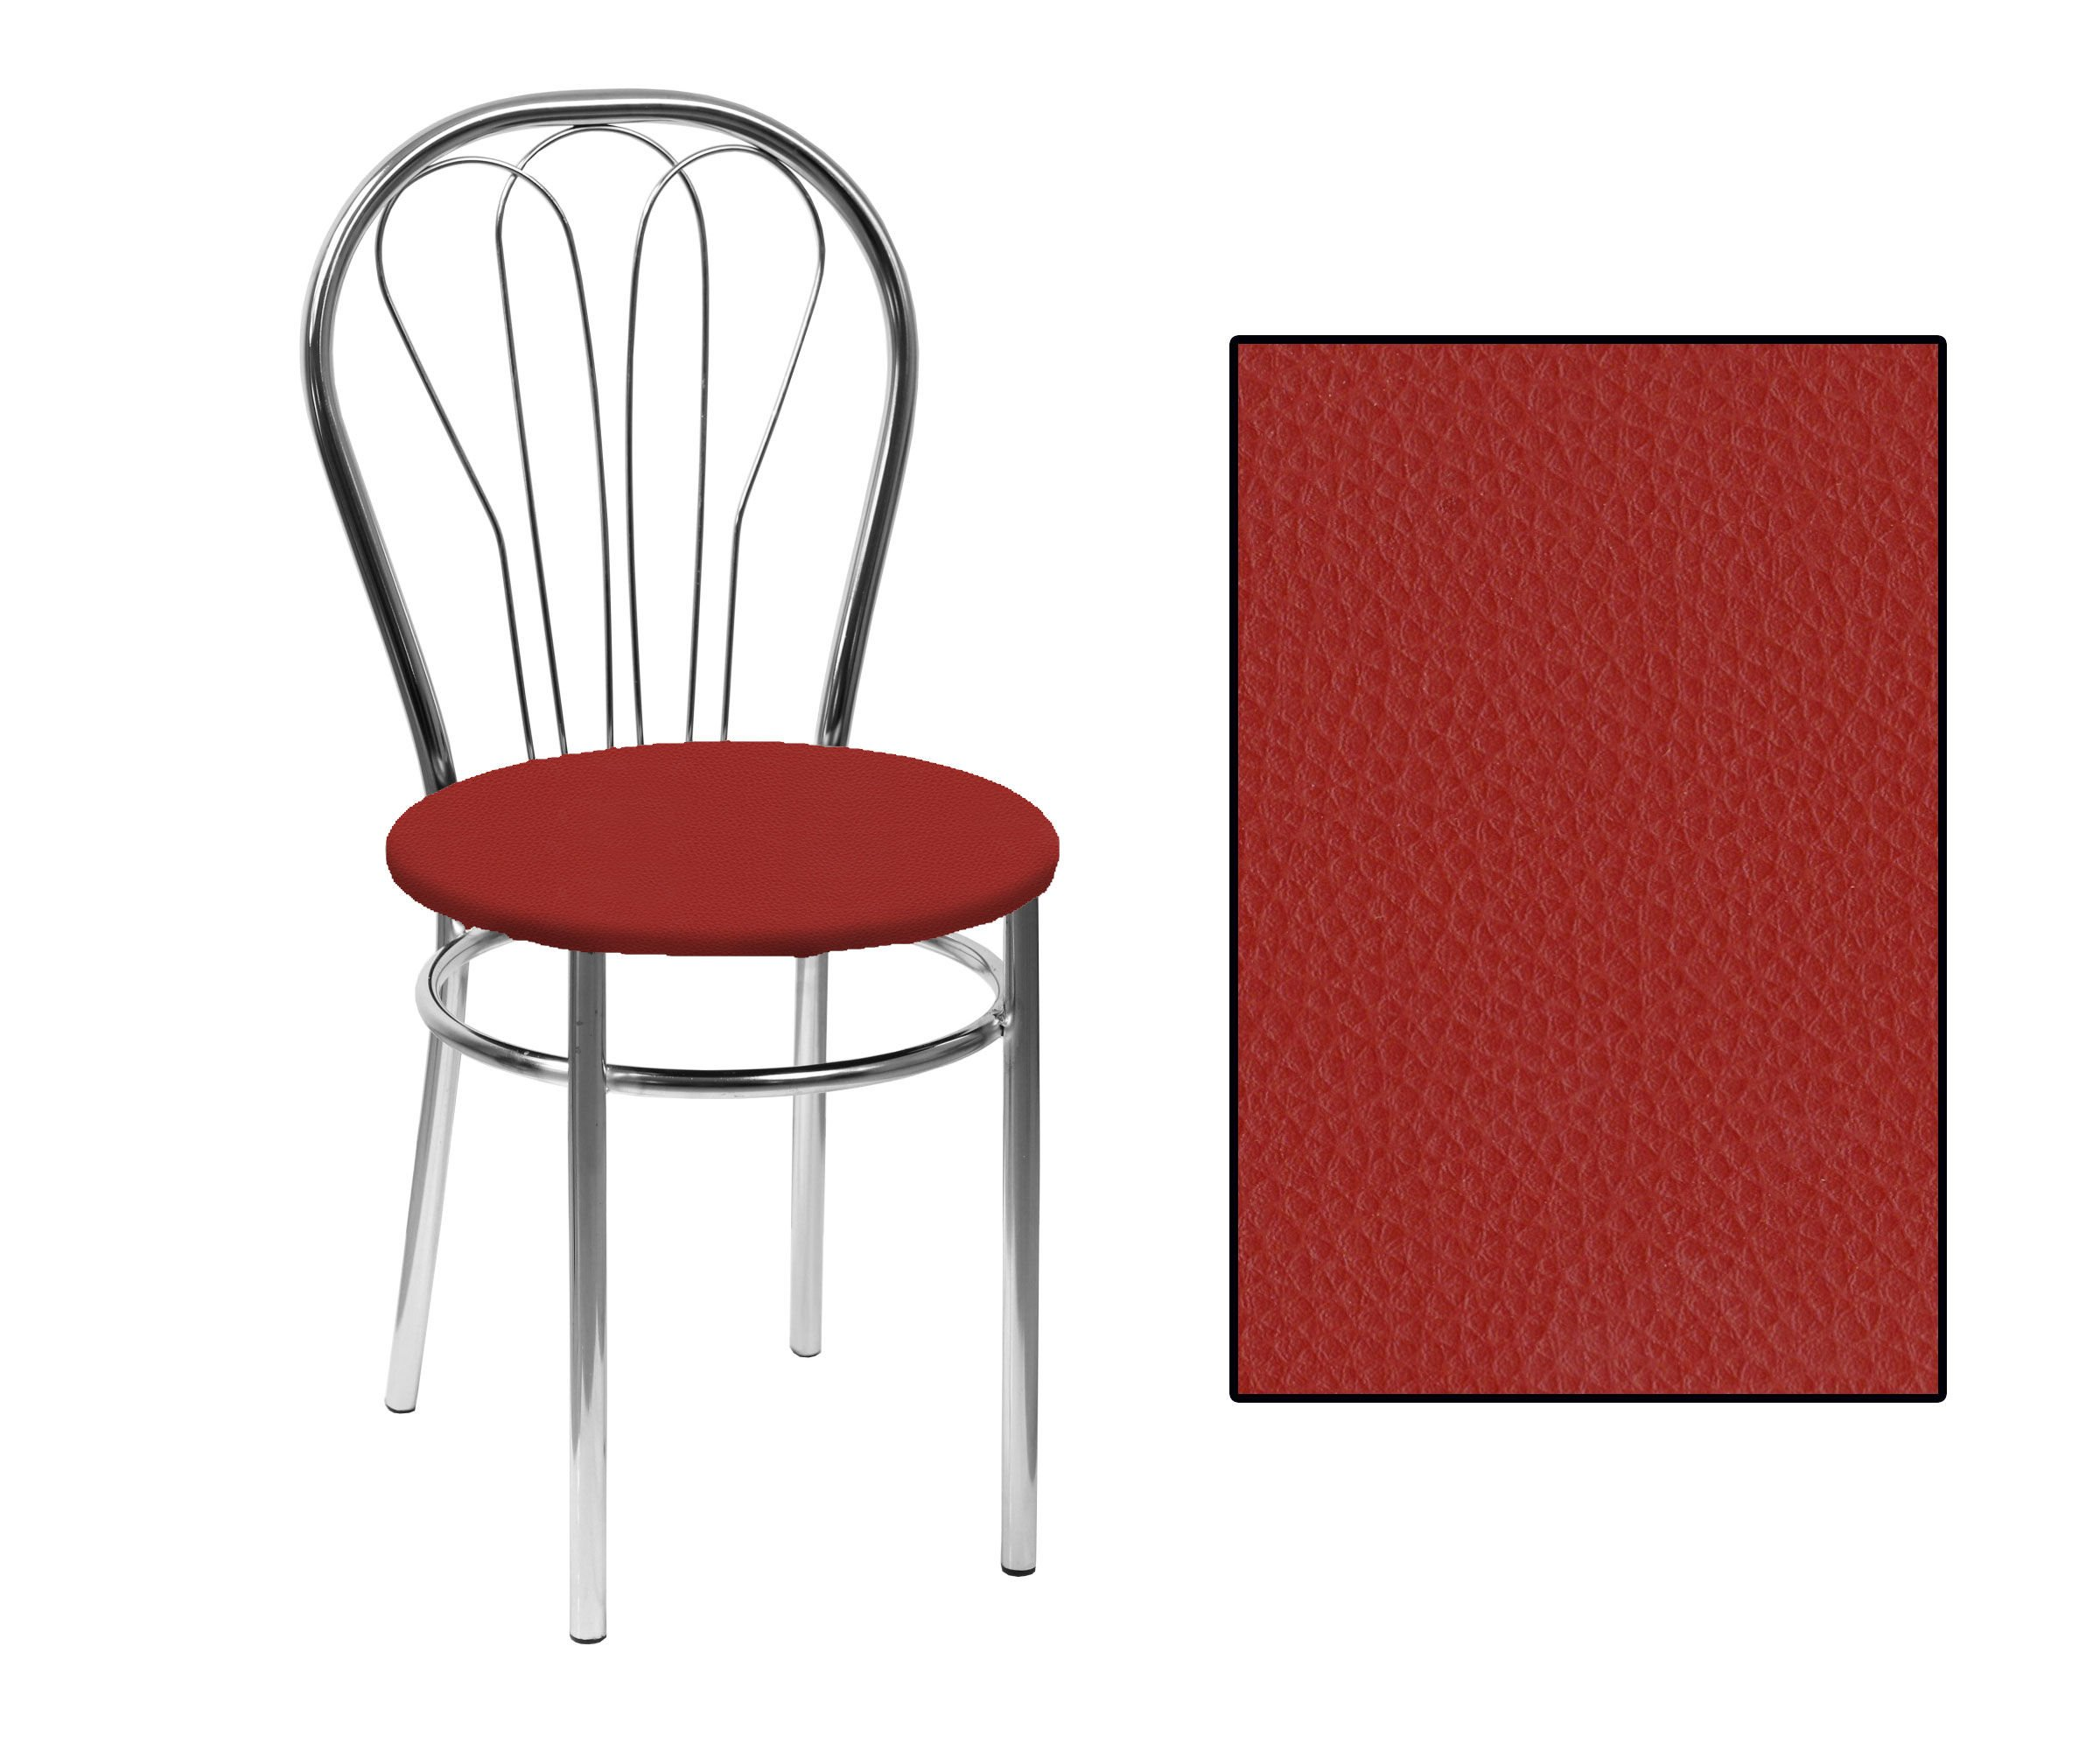 Skn Jowisz Dark Red Chair Chrome Legs